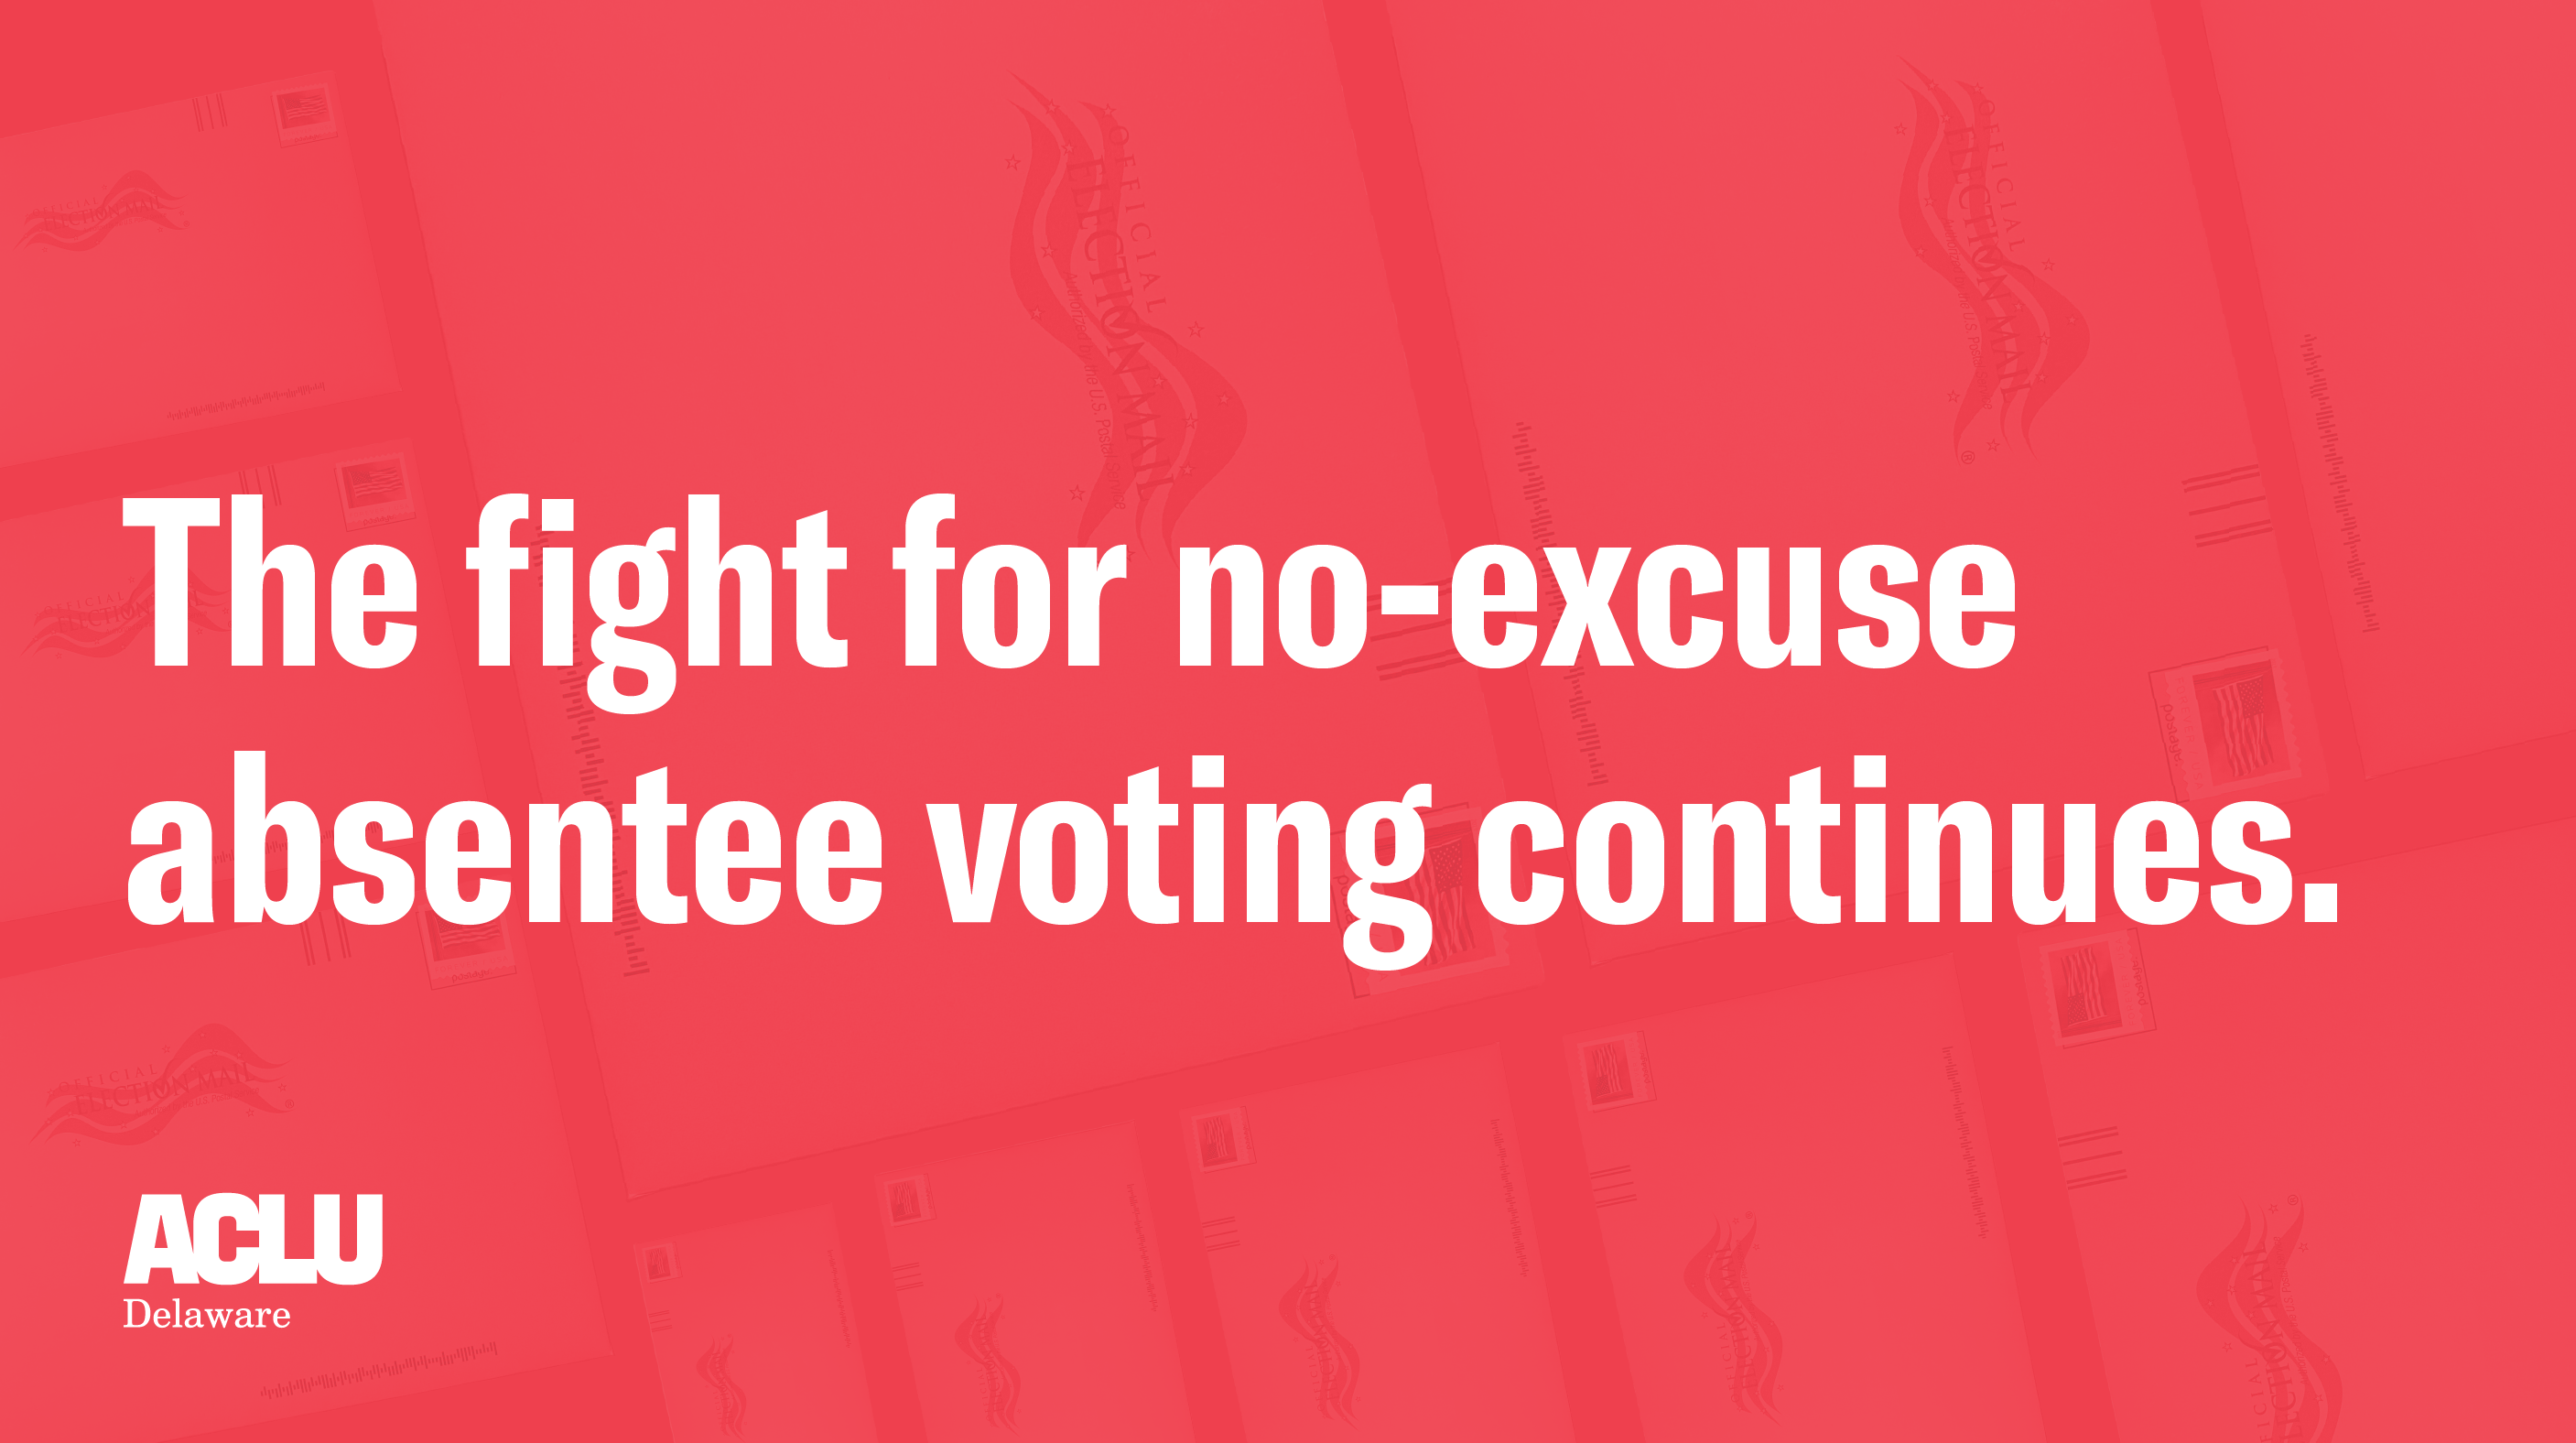 The fight for no-excuse absentee voting continues